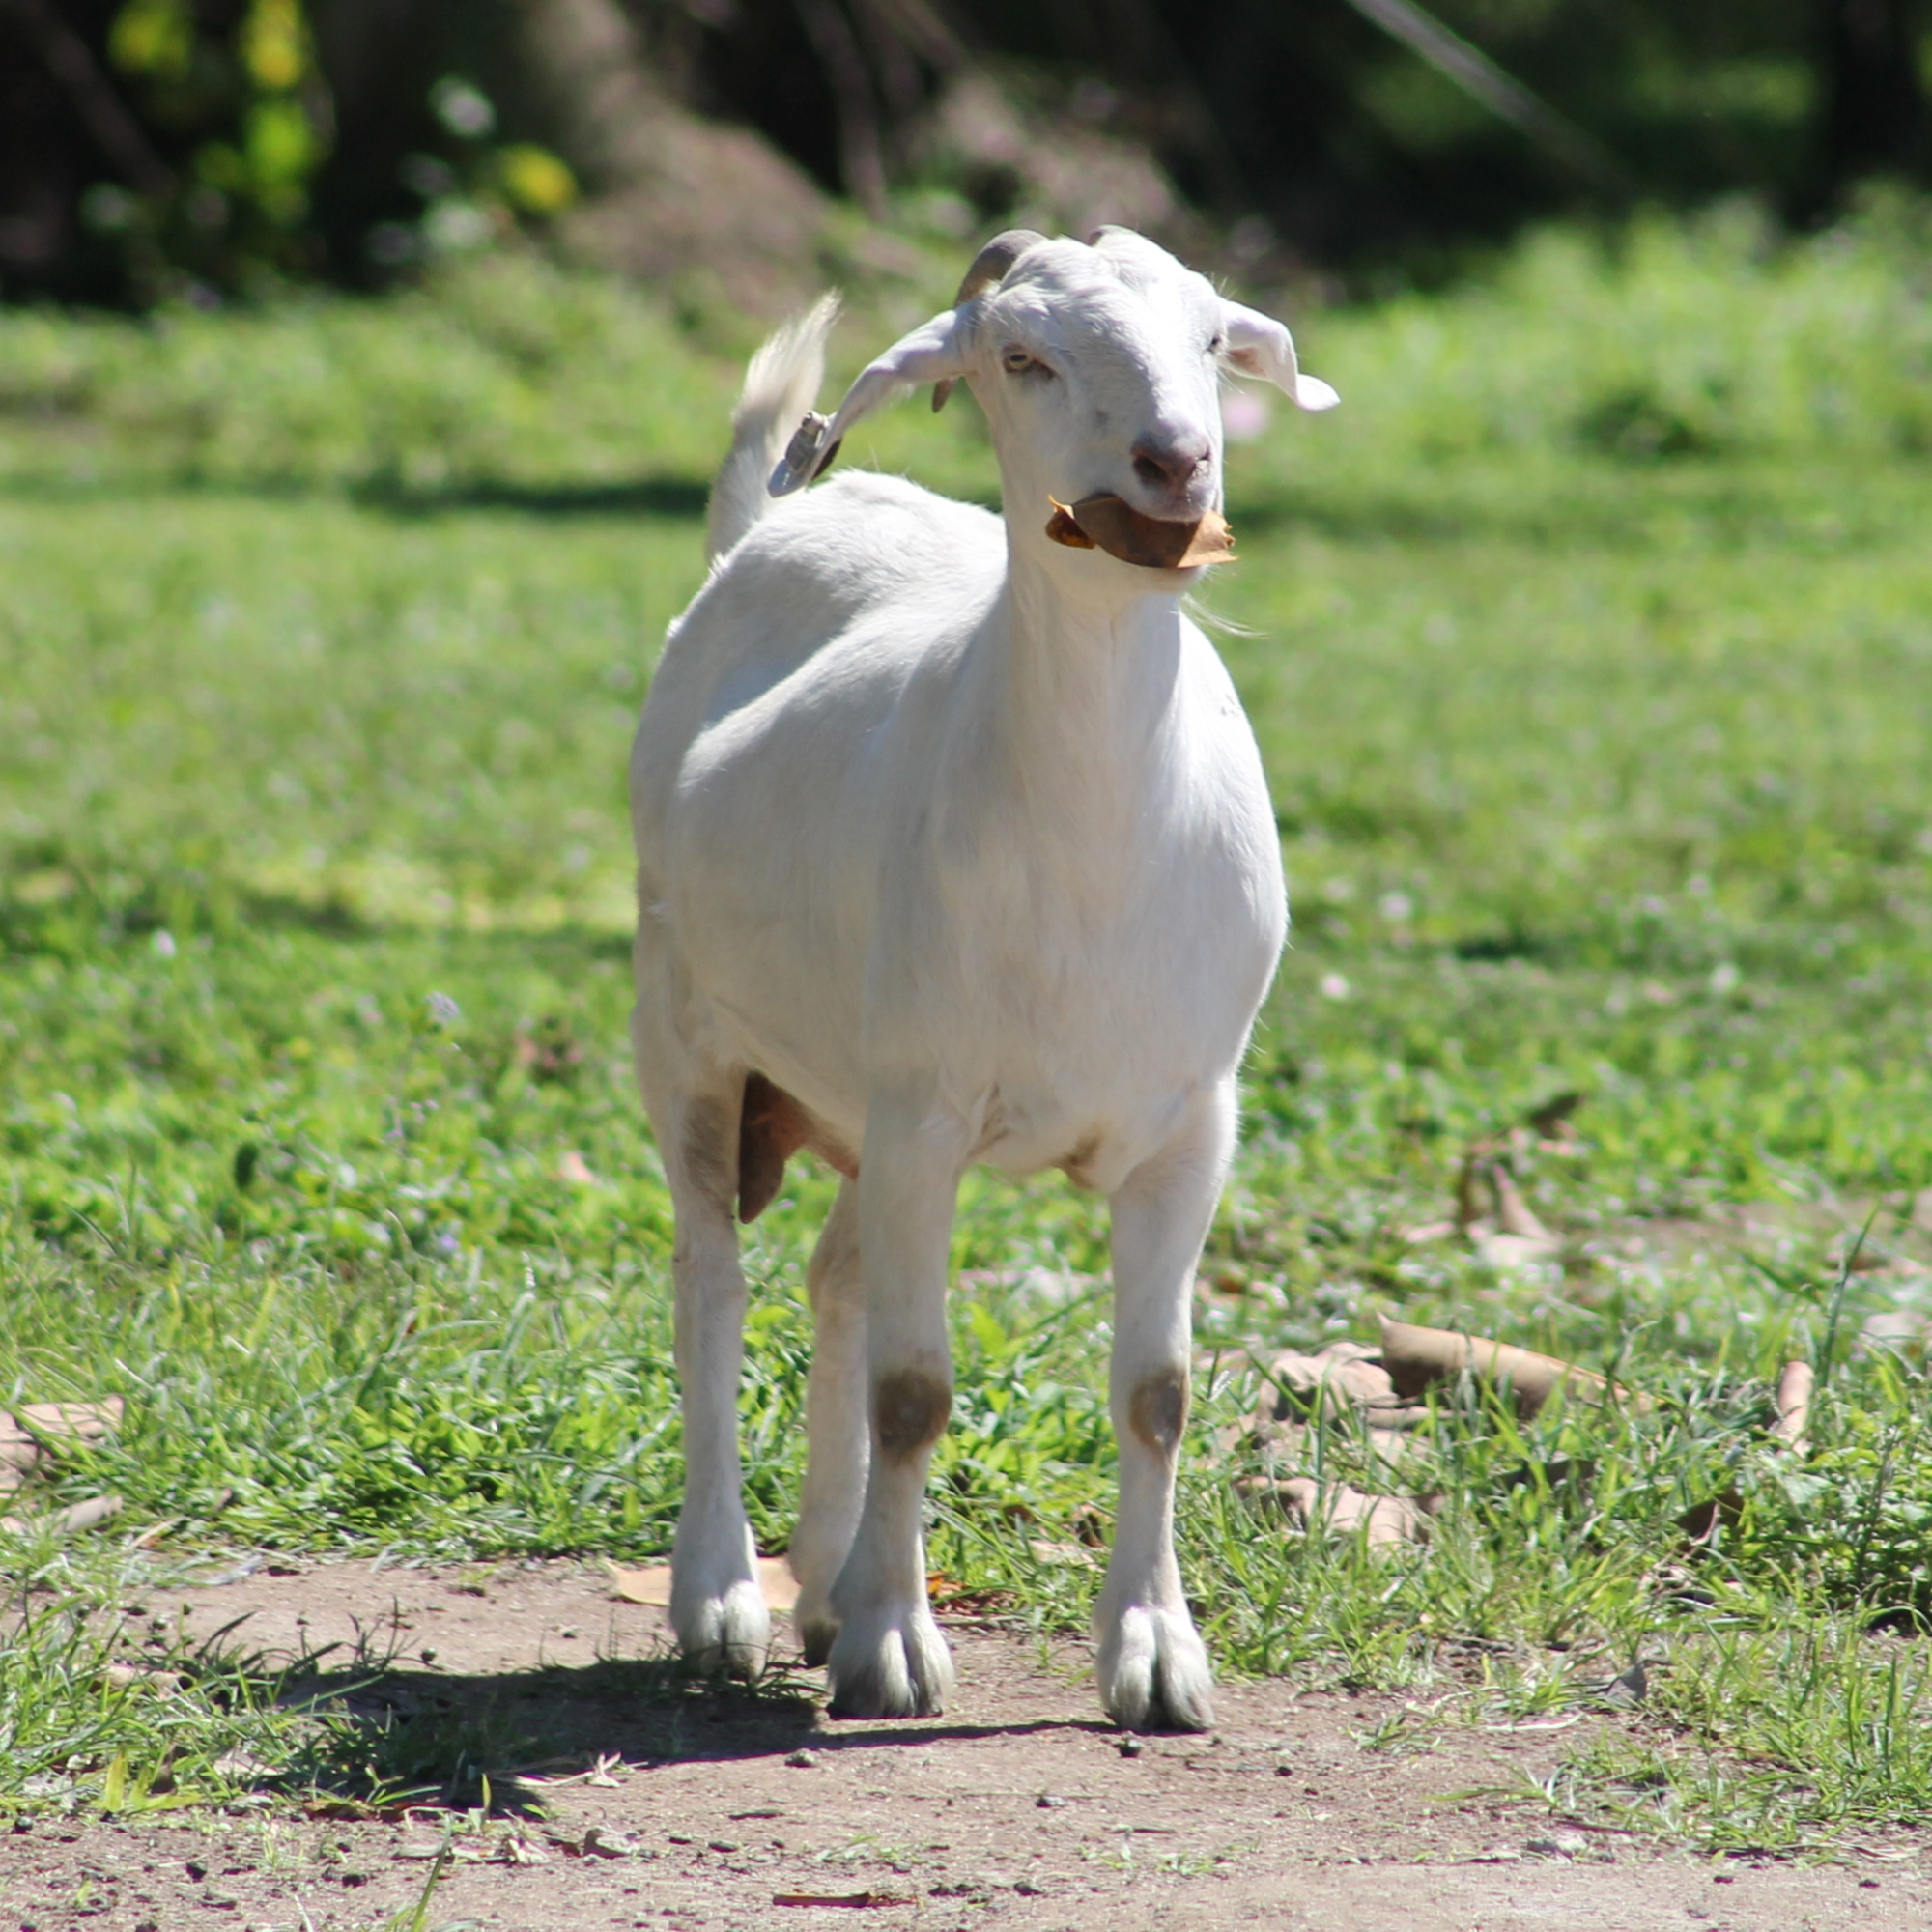 South Florida Society for the Prevention of Cruelty to Animals save livestock everyday